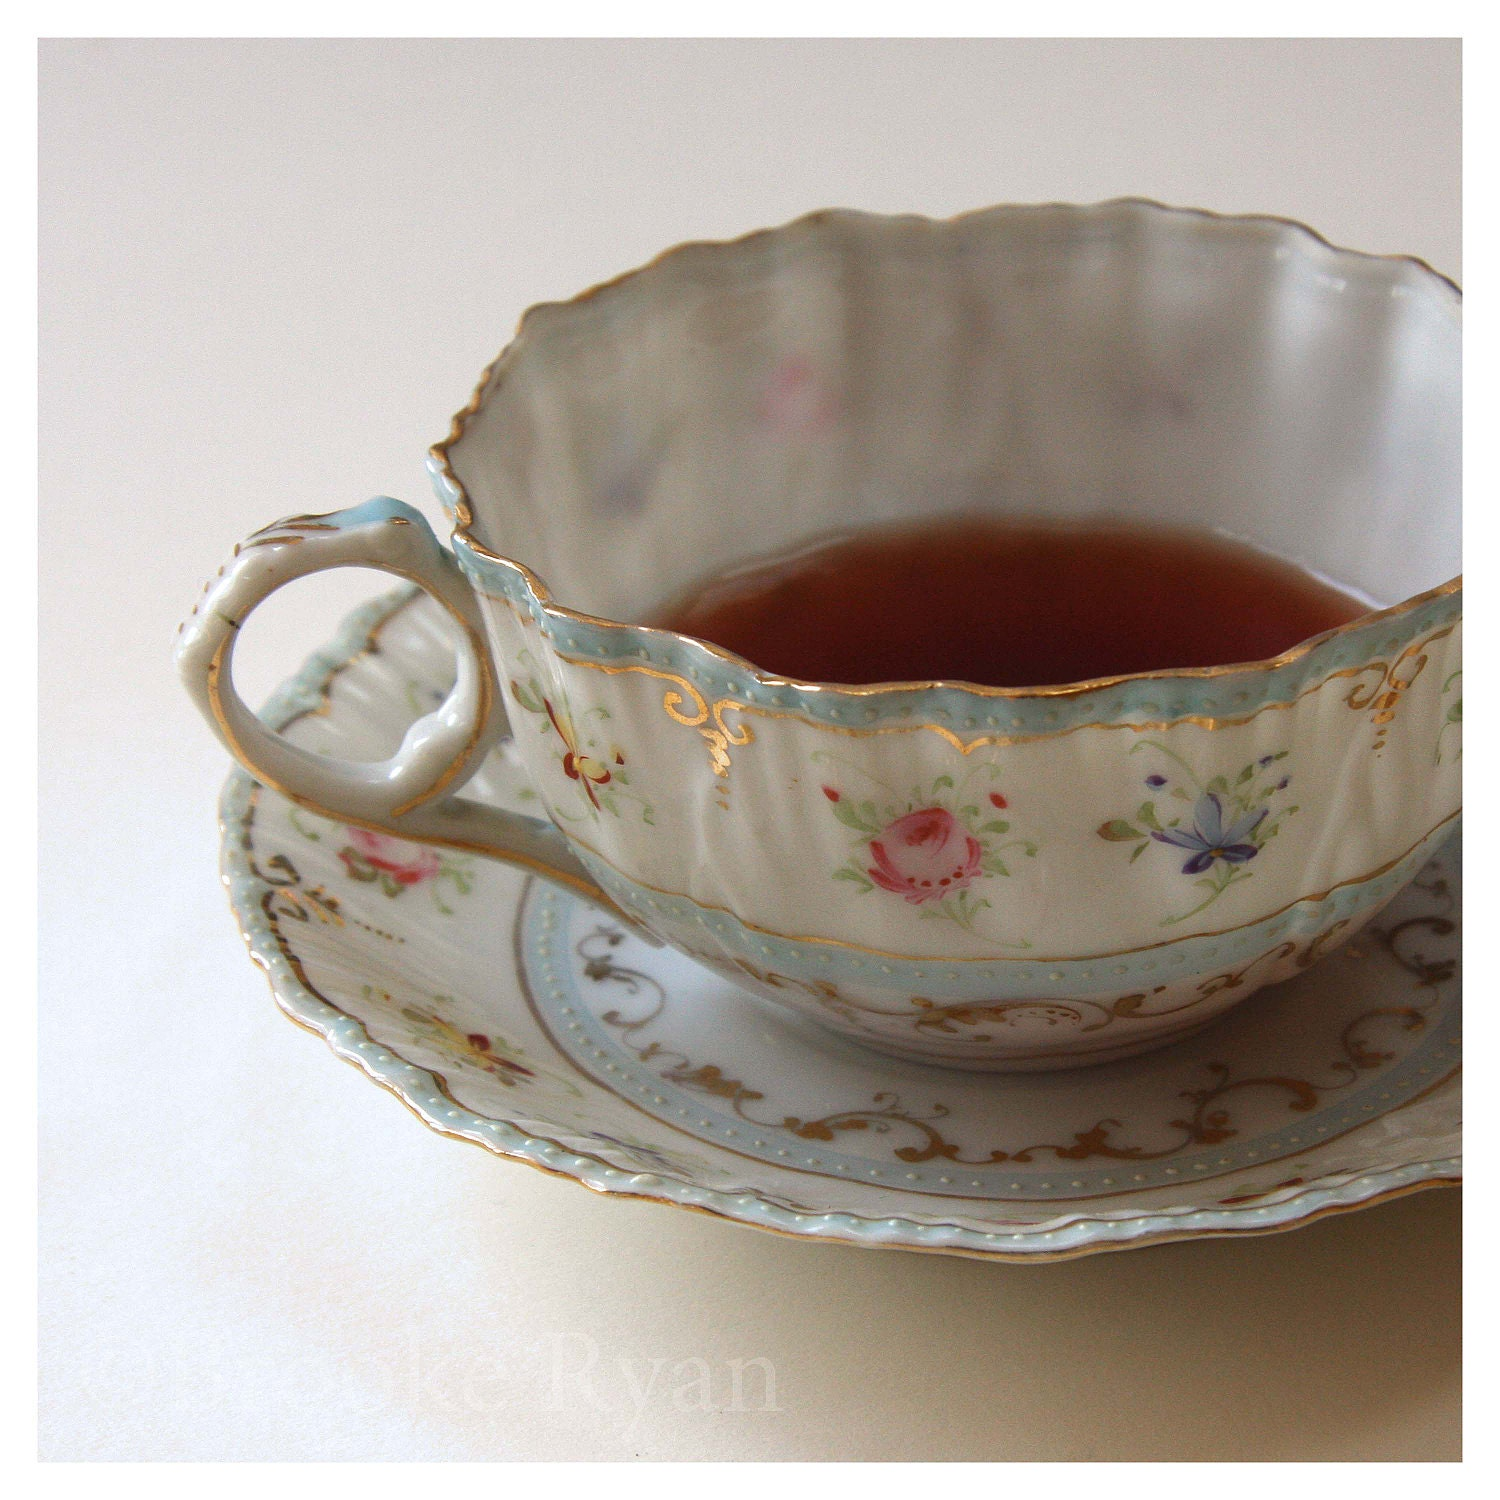 Tea Cup and Saucer Photo 8 x 8  White Blue Pink Roses Gold Floral Bone China - Delicate - BrookeRyanPhoto